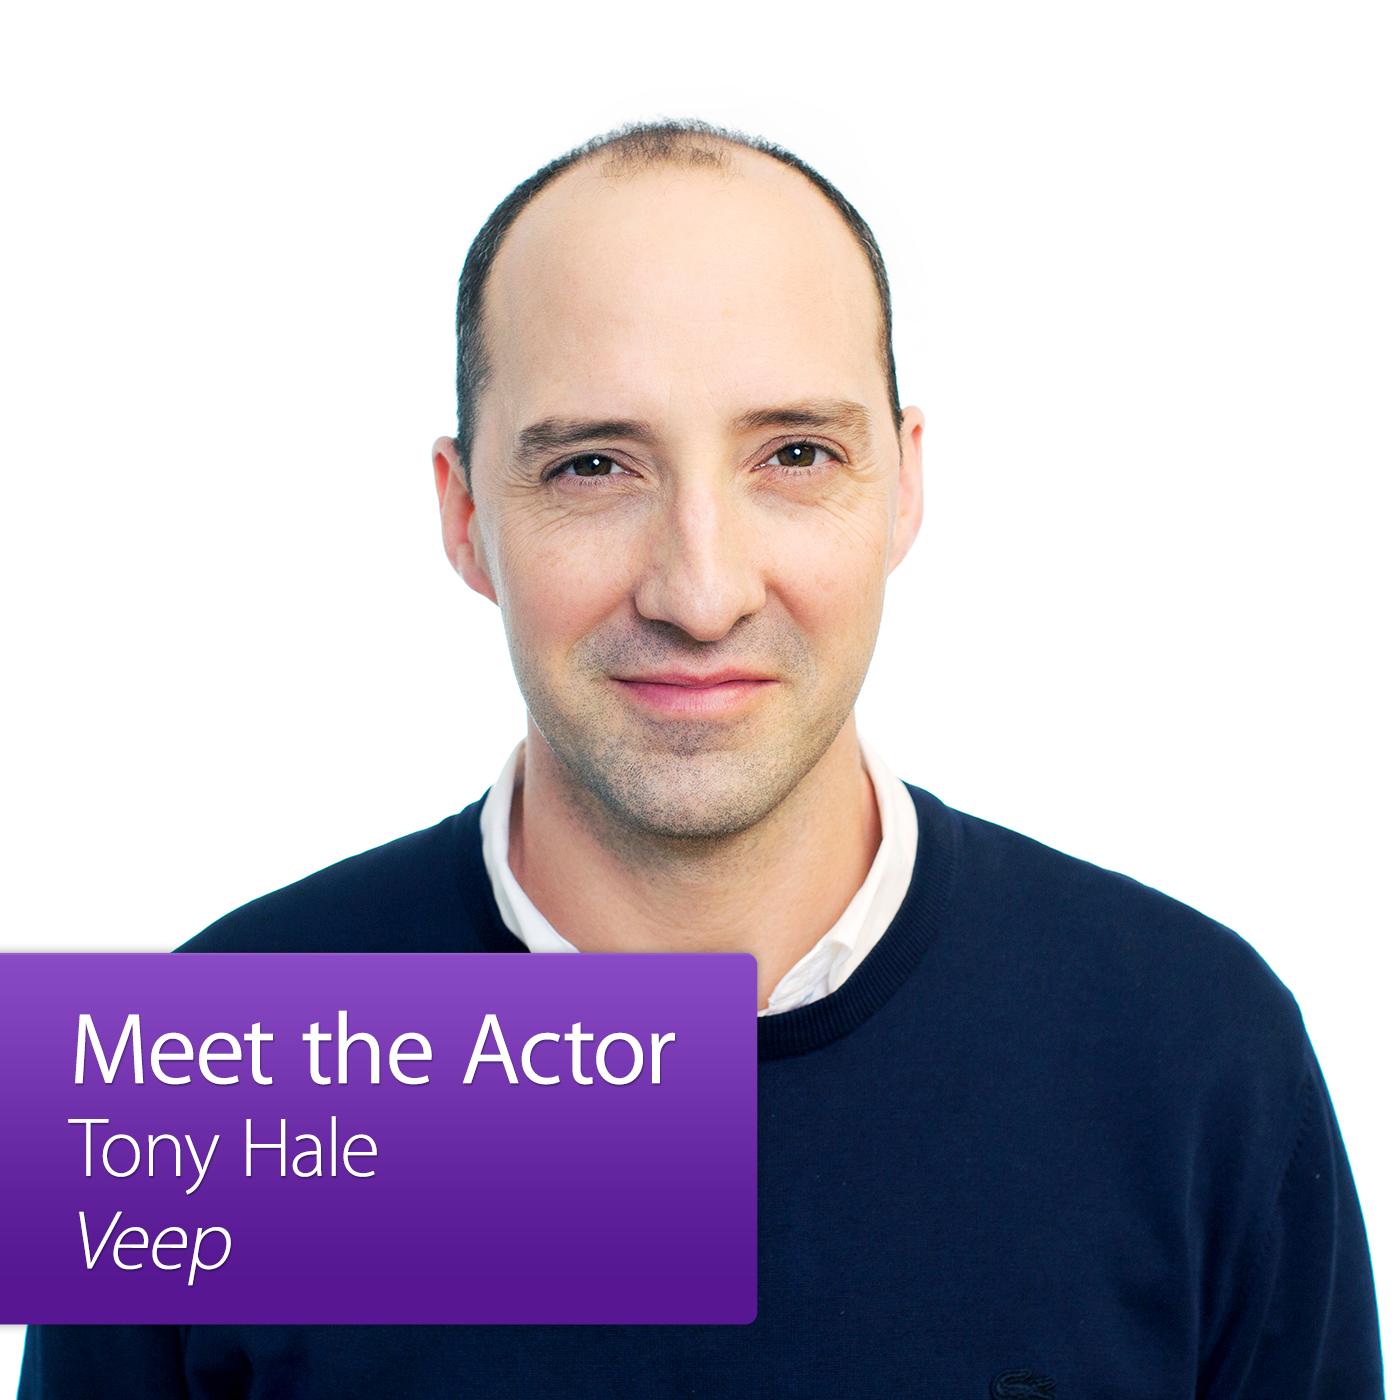 Tony Hale: Meet the Actor